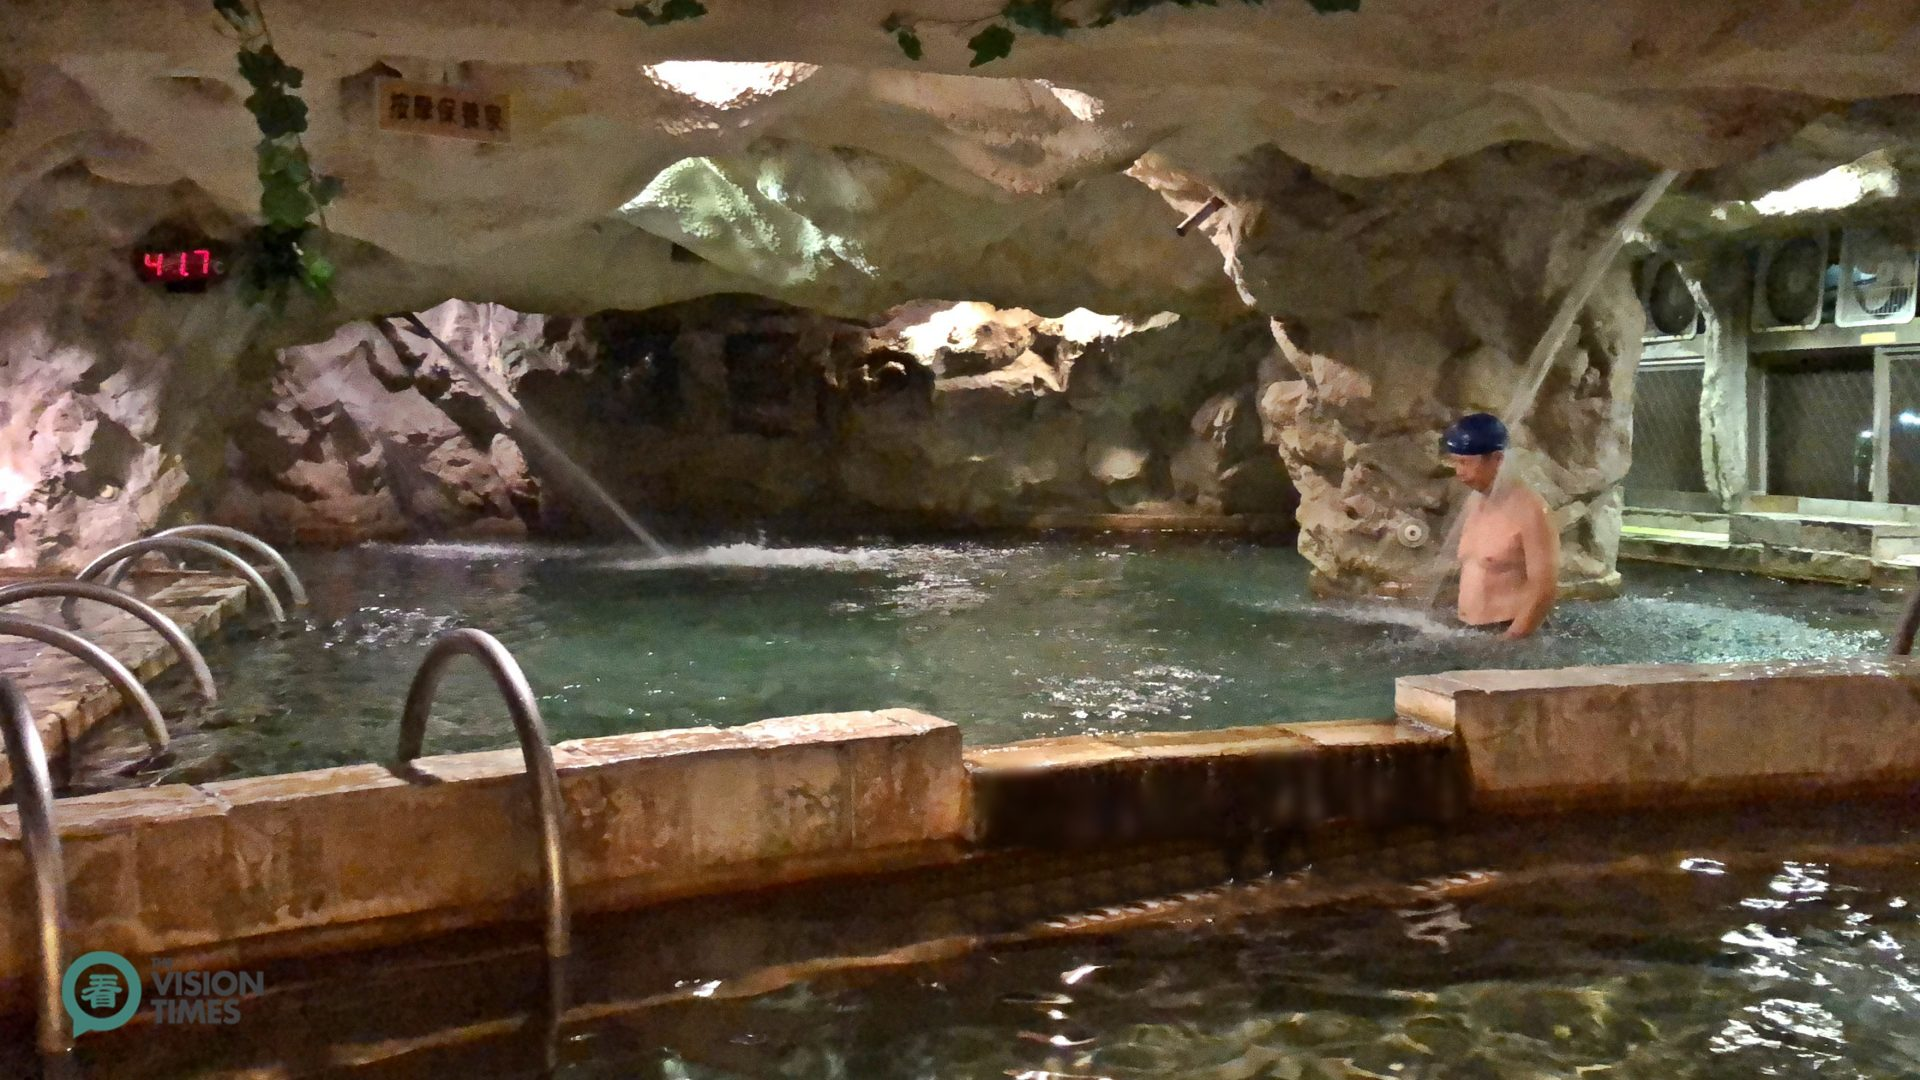 A cavern-like hot spring pool inside a leading hotel in the Dongpu Hot Spring Area. (Image: Billy Shyu / Vision Times)